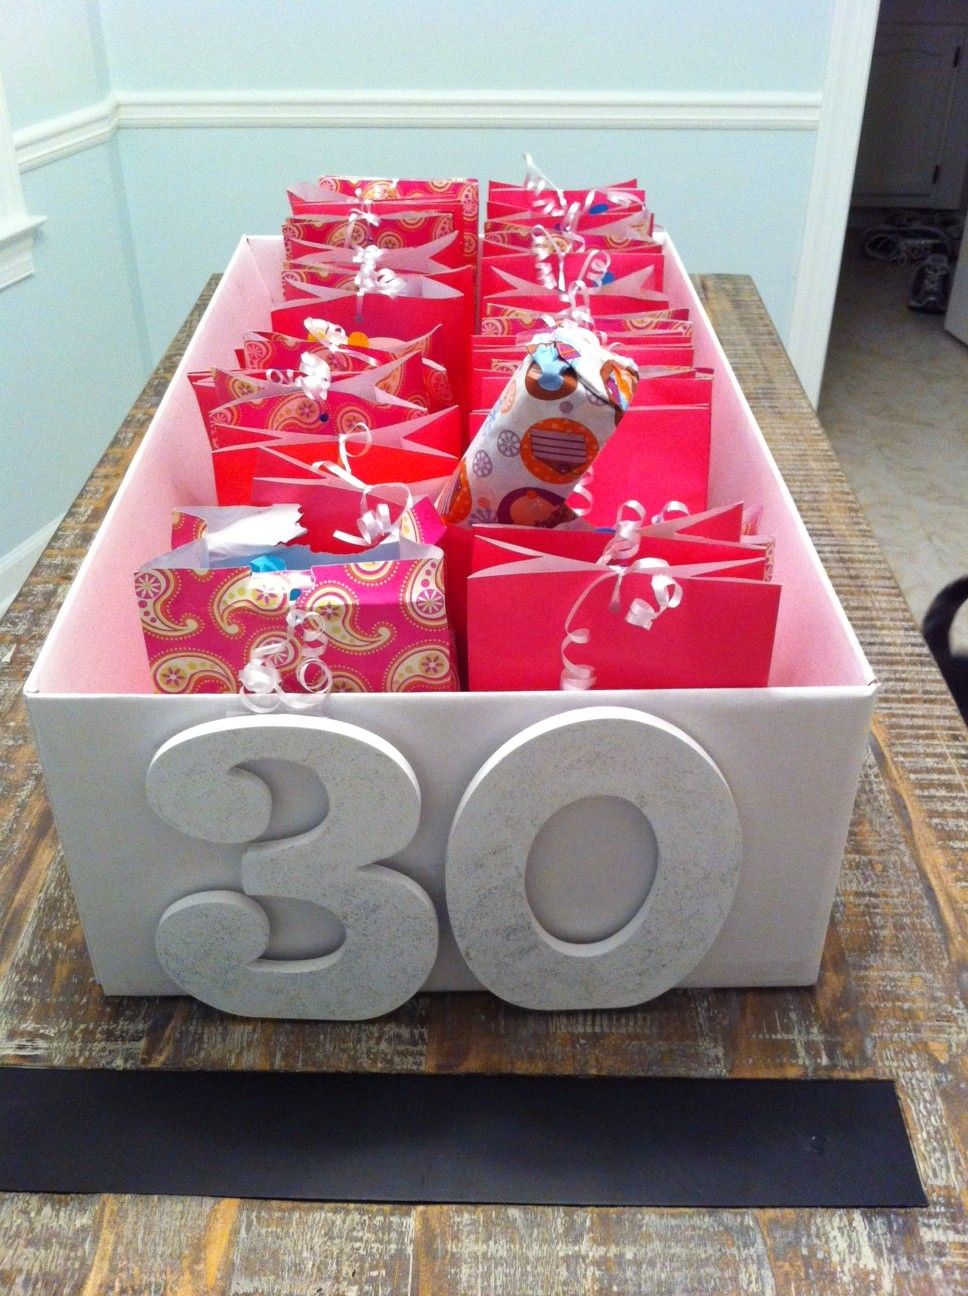 30 Presents For The Days Before A 30th Birthday